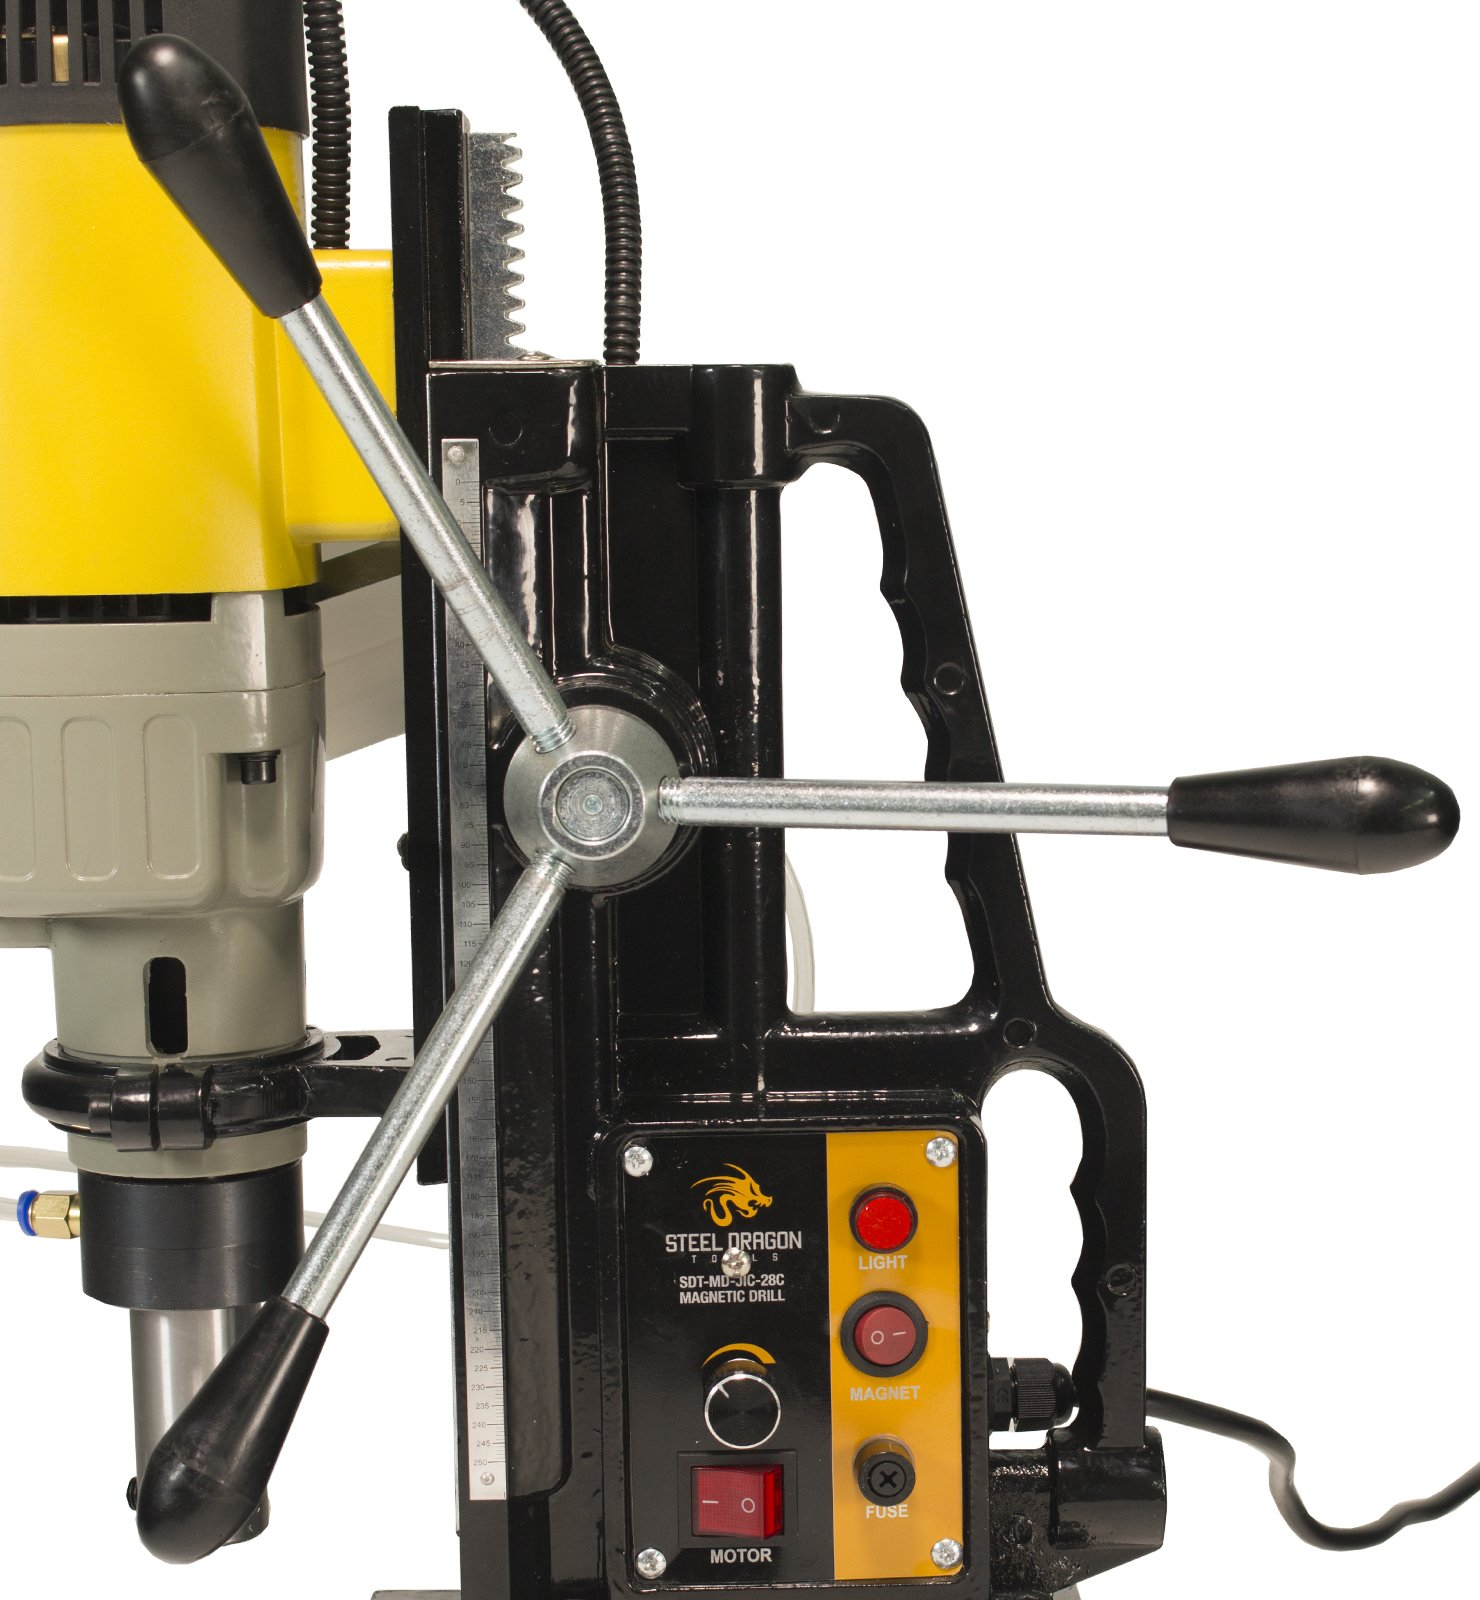 Steel Dragon Tools MD50 Magnetic Drill Press with 2'' Boring Diameter and 2,900 LBS Magnetic Force by Steel Dragon Tools (Image #9)